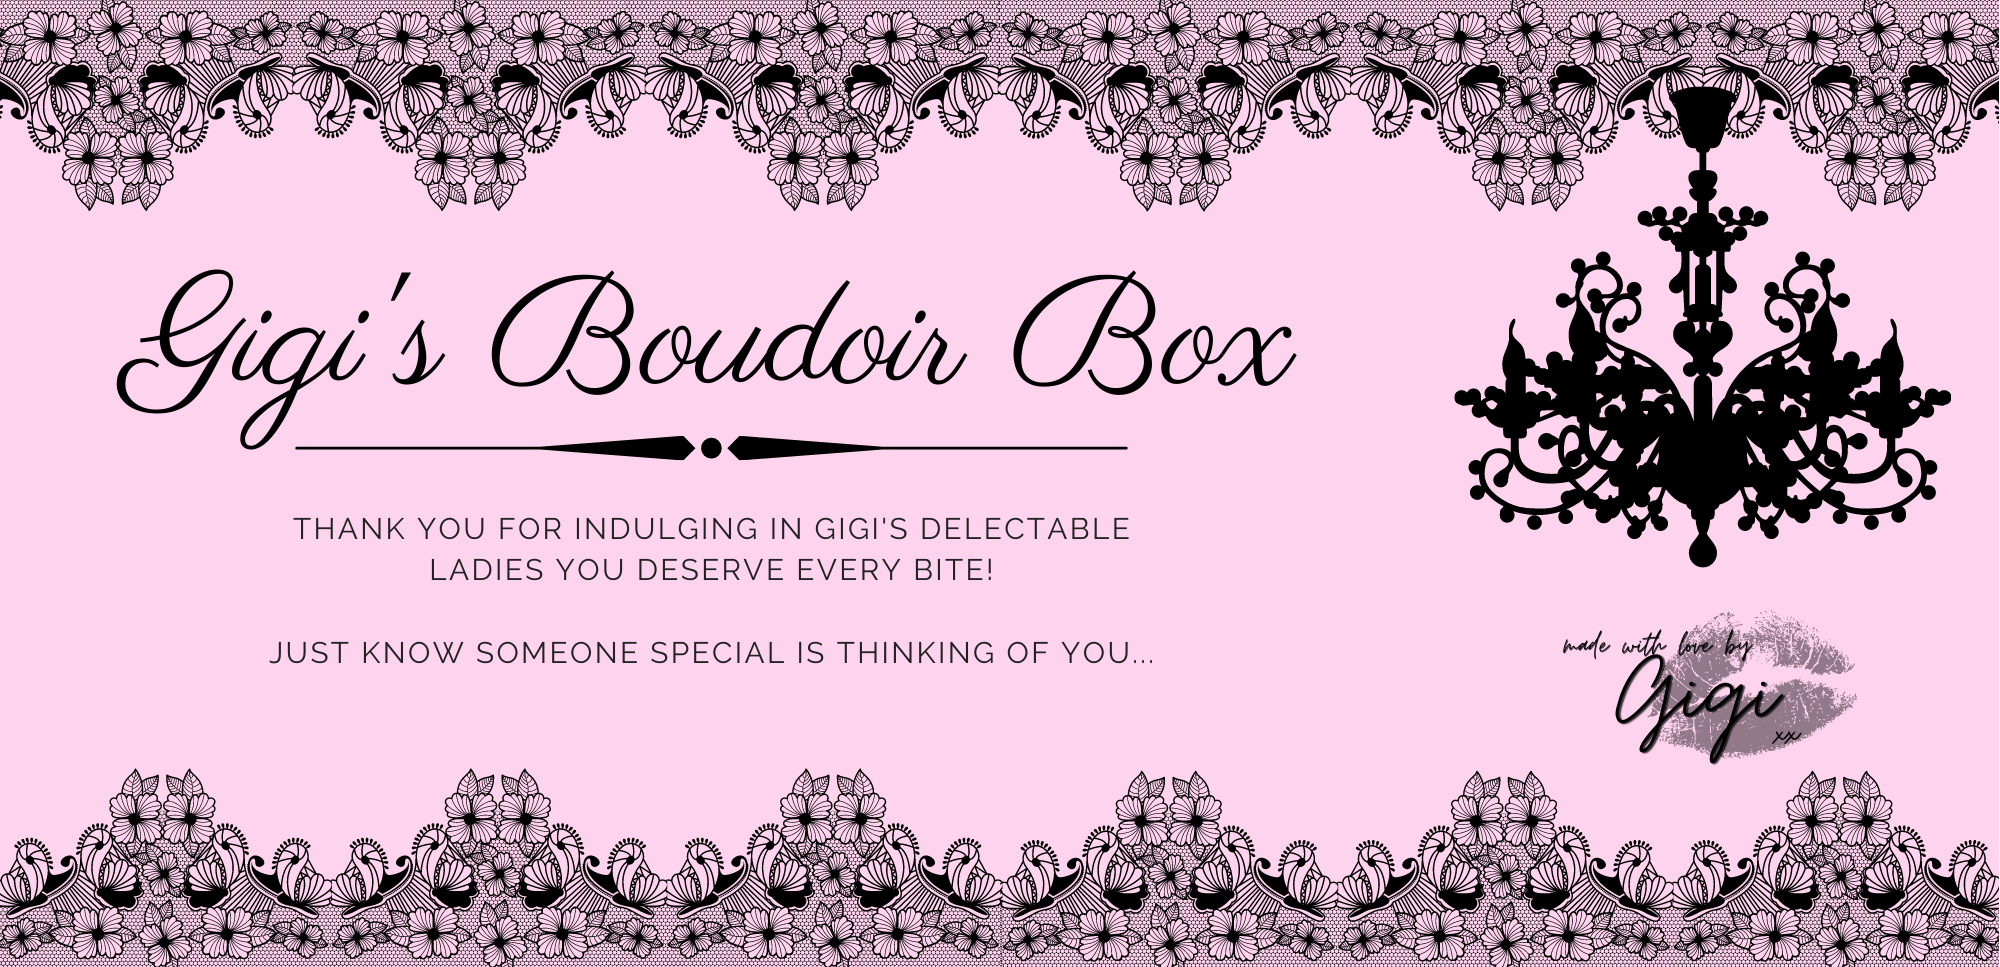 Gigi's Boudoir Box | Queen B | Miss Mariah | Marilyn Monroe | Red Velvet Mistress